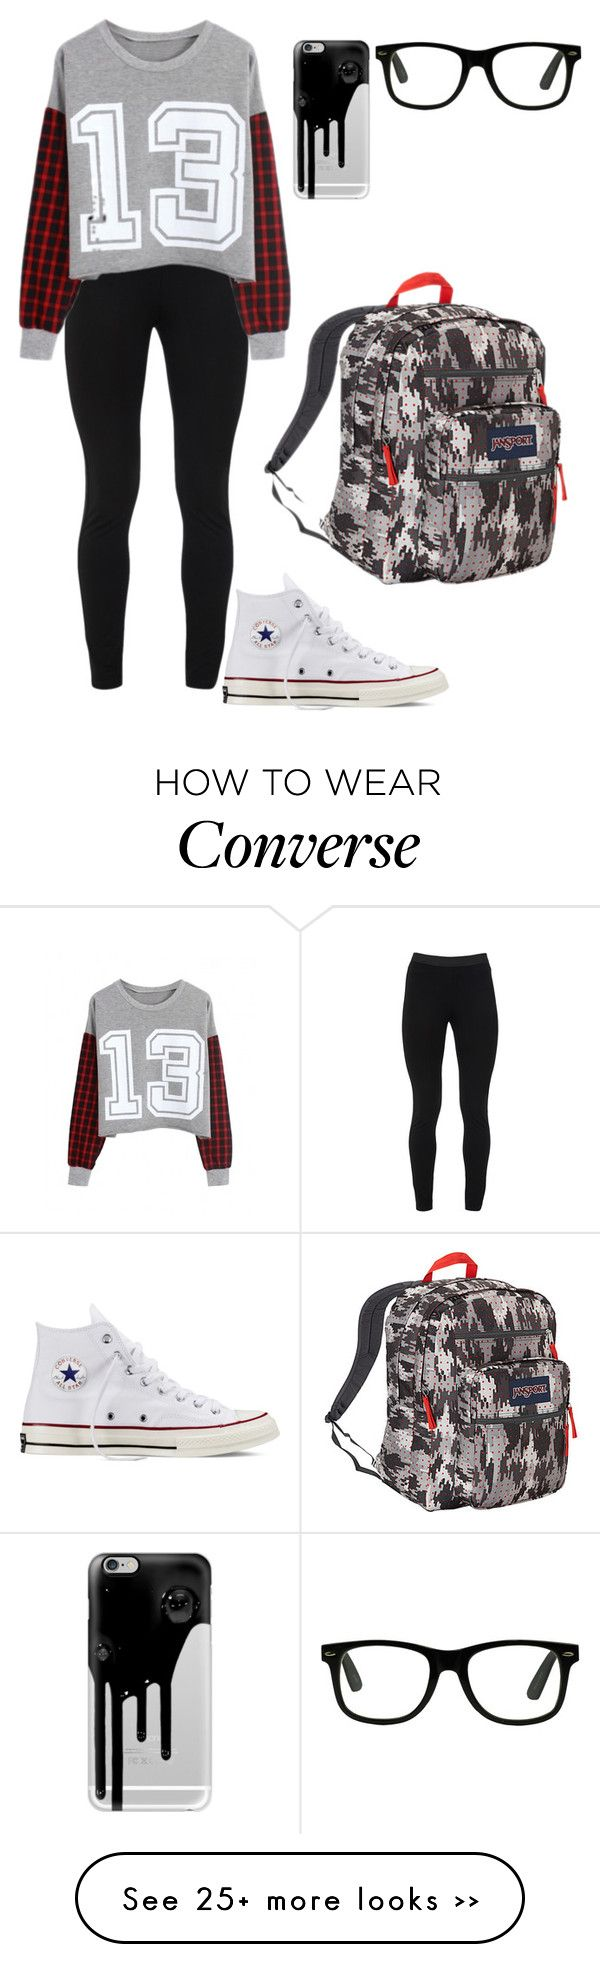 """Untitled #398"" by meowliv on Polyvore featuring Peace of Cloth, Converse, JanSport and Casetify"